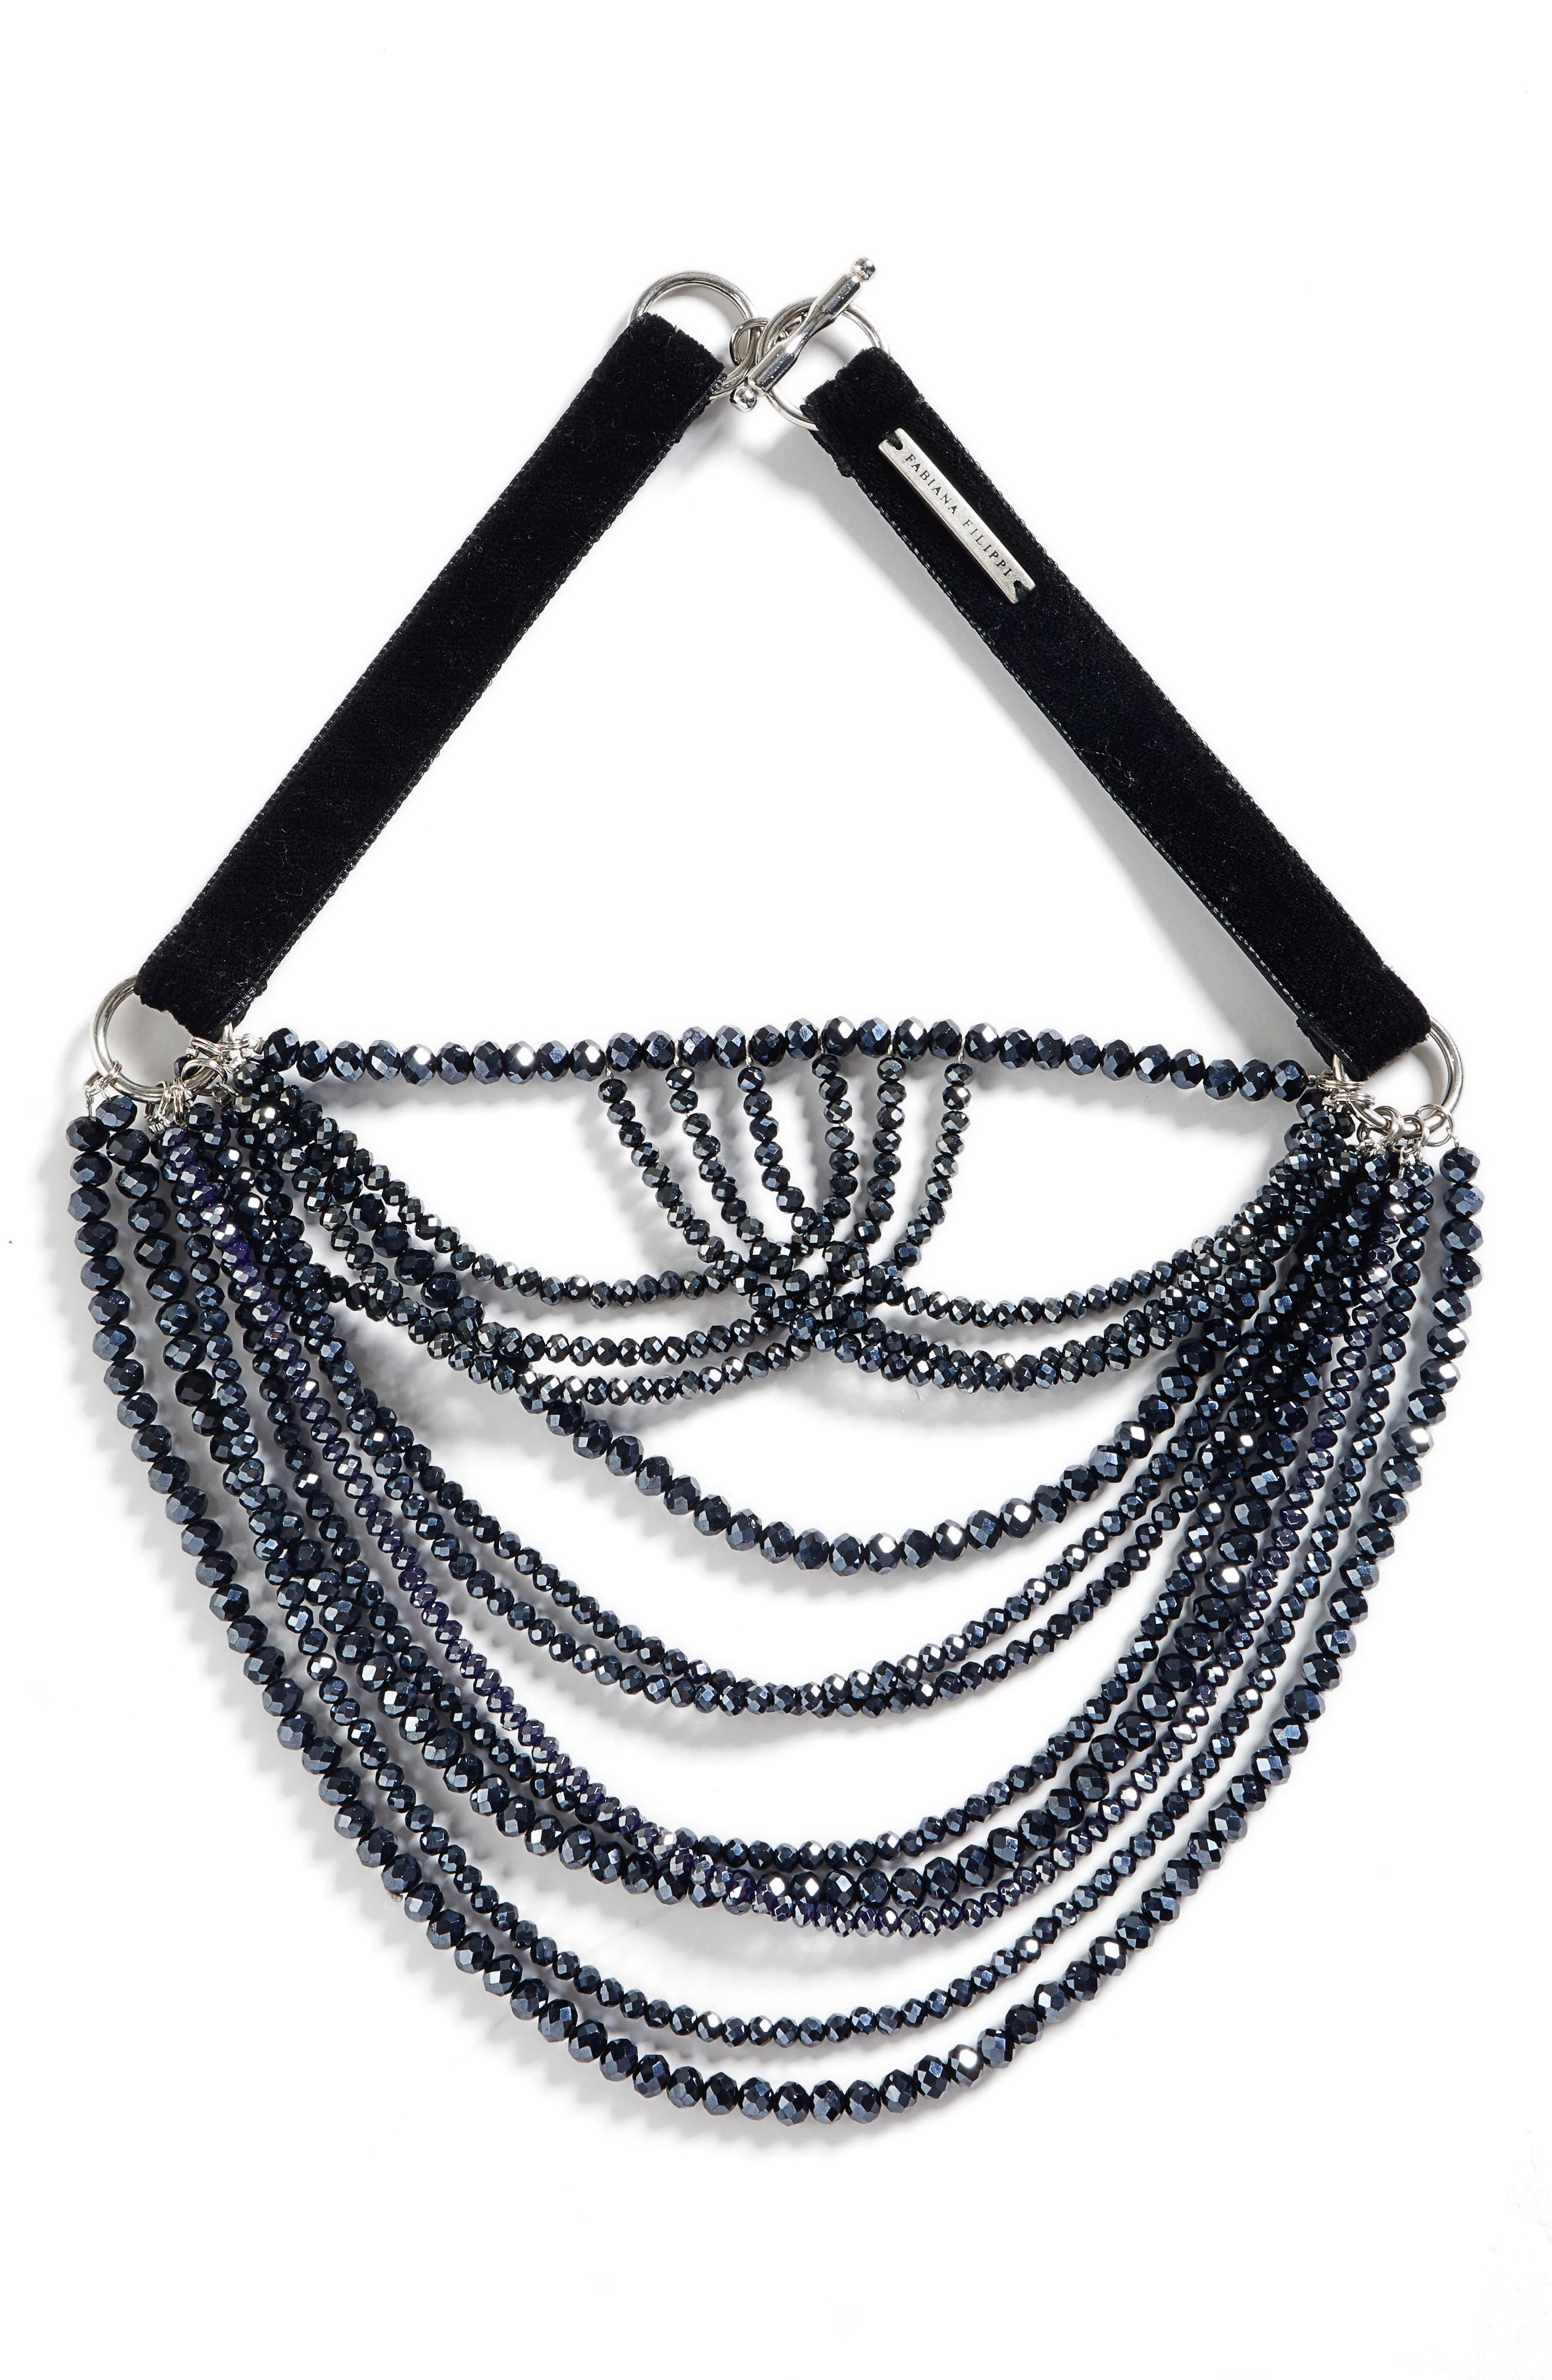 MULTISTRAND GLASS BEAD NECKLACE